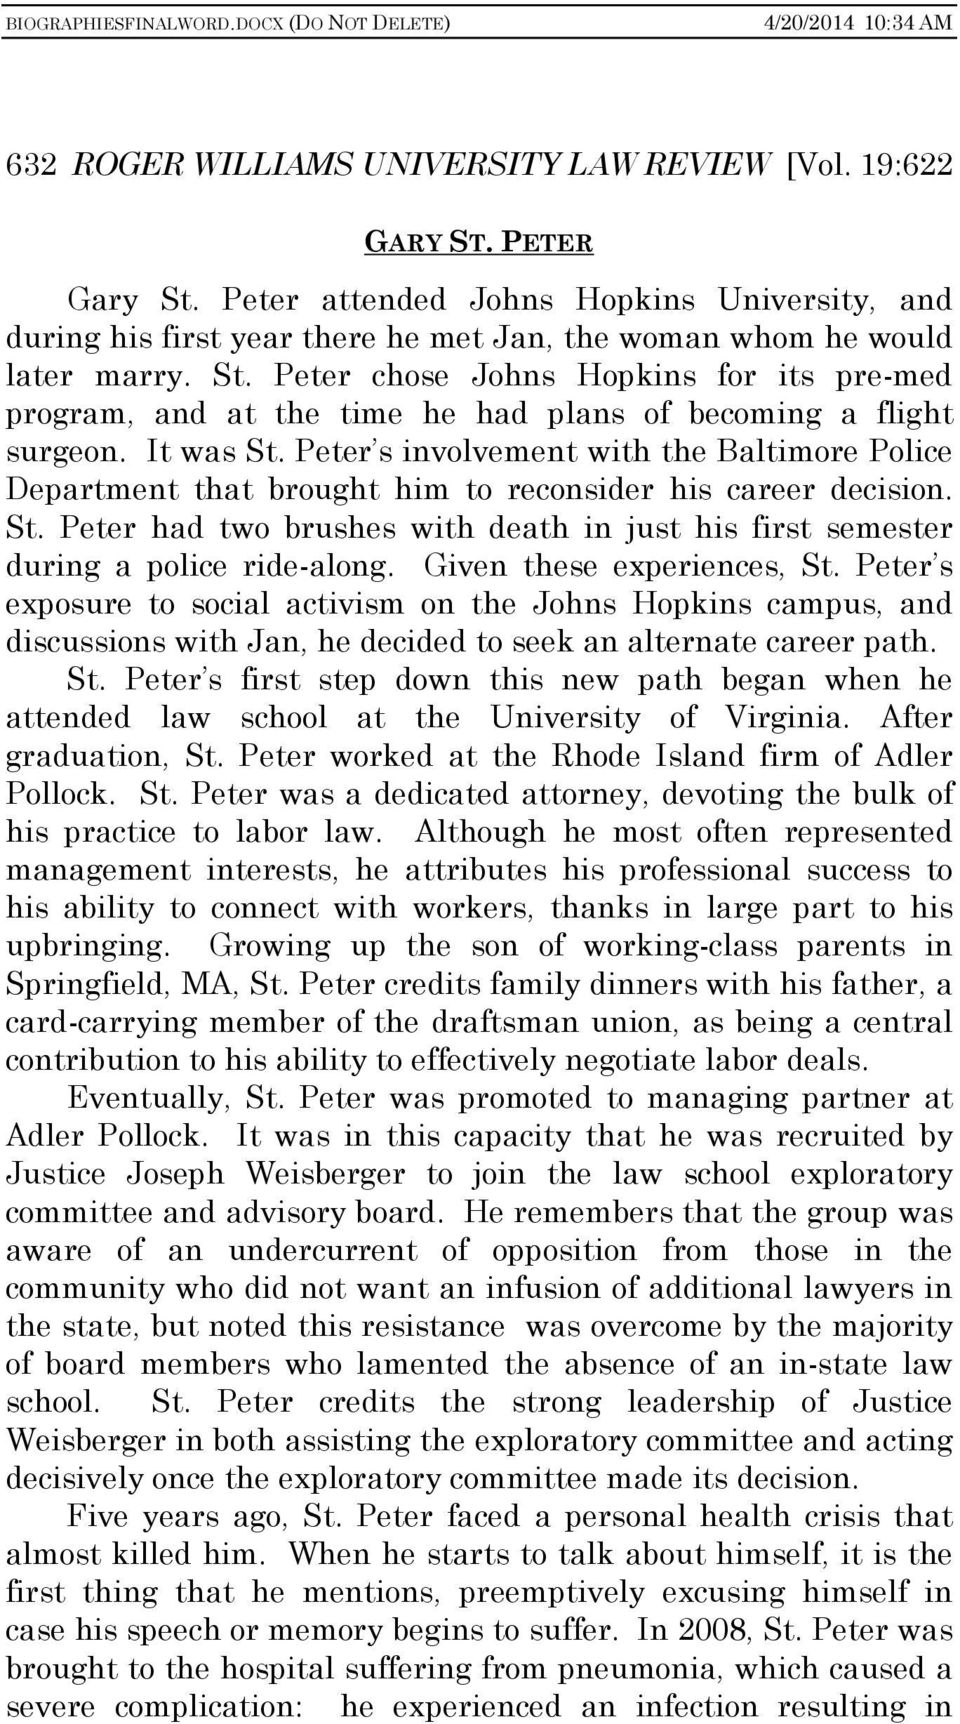 Peter s involvement with the Baltimore Police Department that brought him to reconsider his career decision. St. Peter had two brushes with death in just his first semester during a police ride-along.